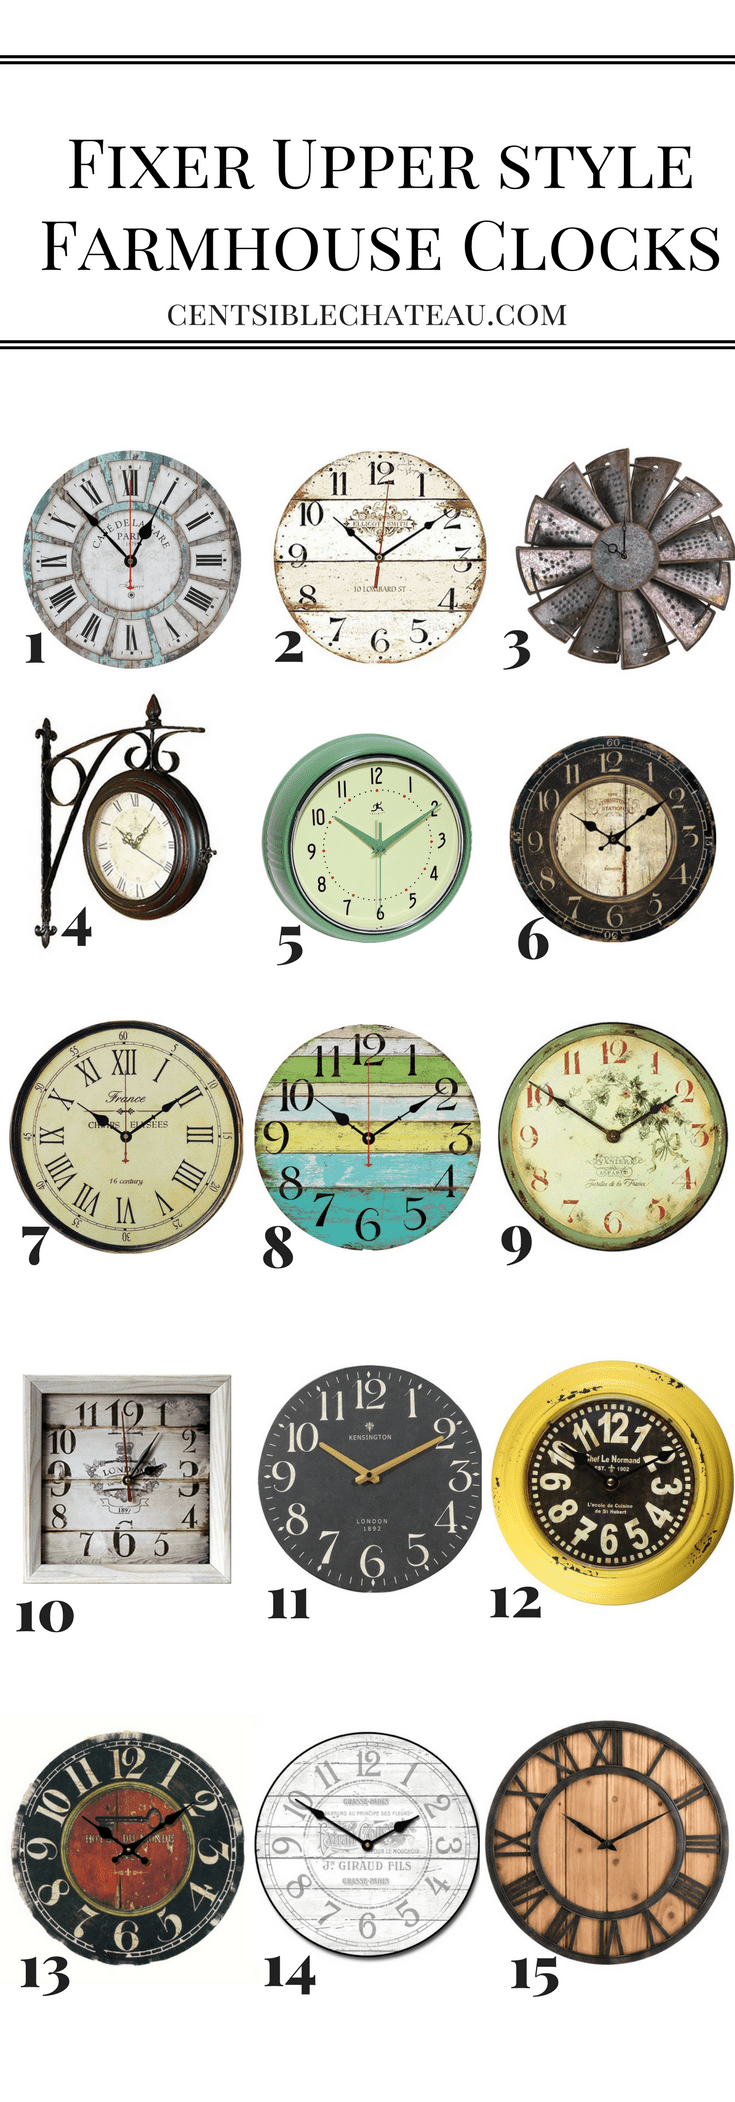 You can't have Fixer Upper Style without Farmhouse Clocks! Here are some adorable ones starting at $15.00 CentsibleChateau.com #clock #farmhouseclock